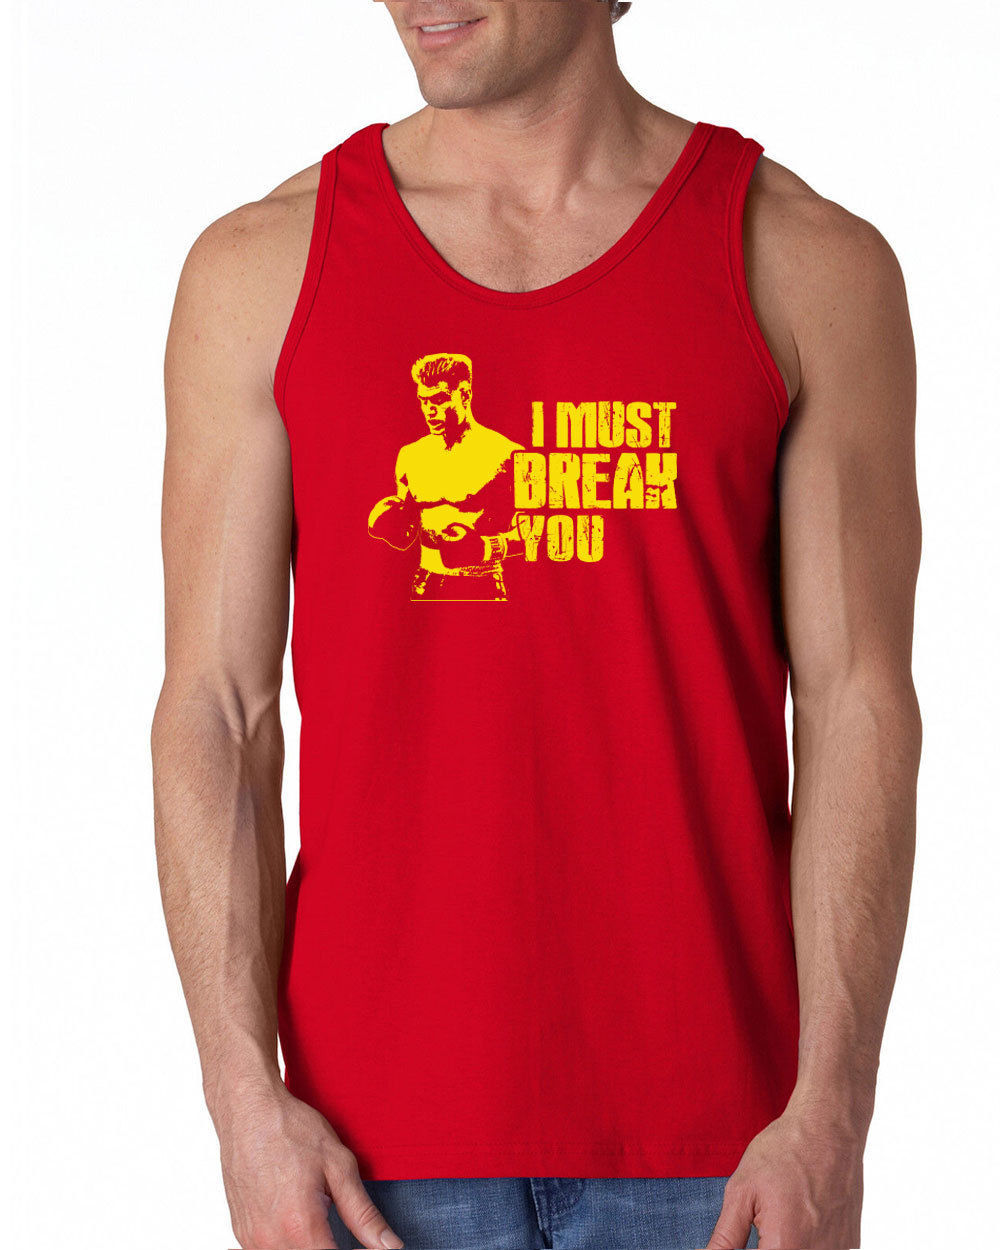 076 I Must Break You Tank Top funny boxing and 50 similar items